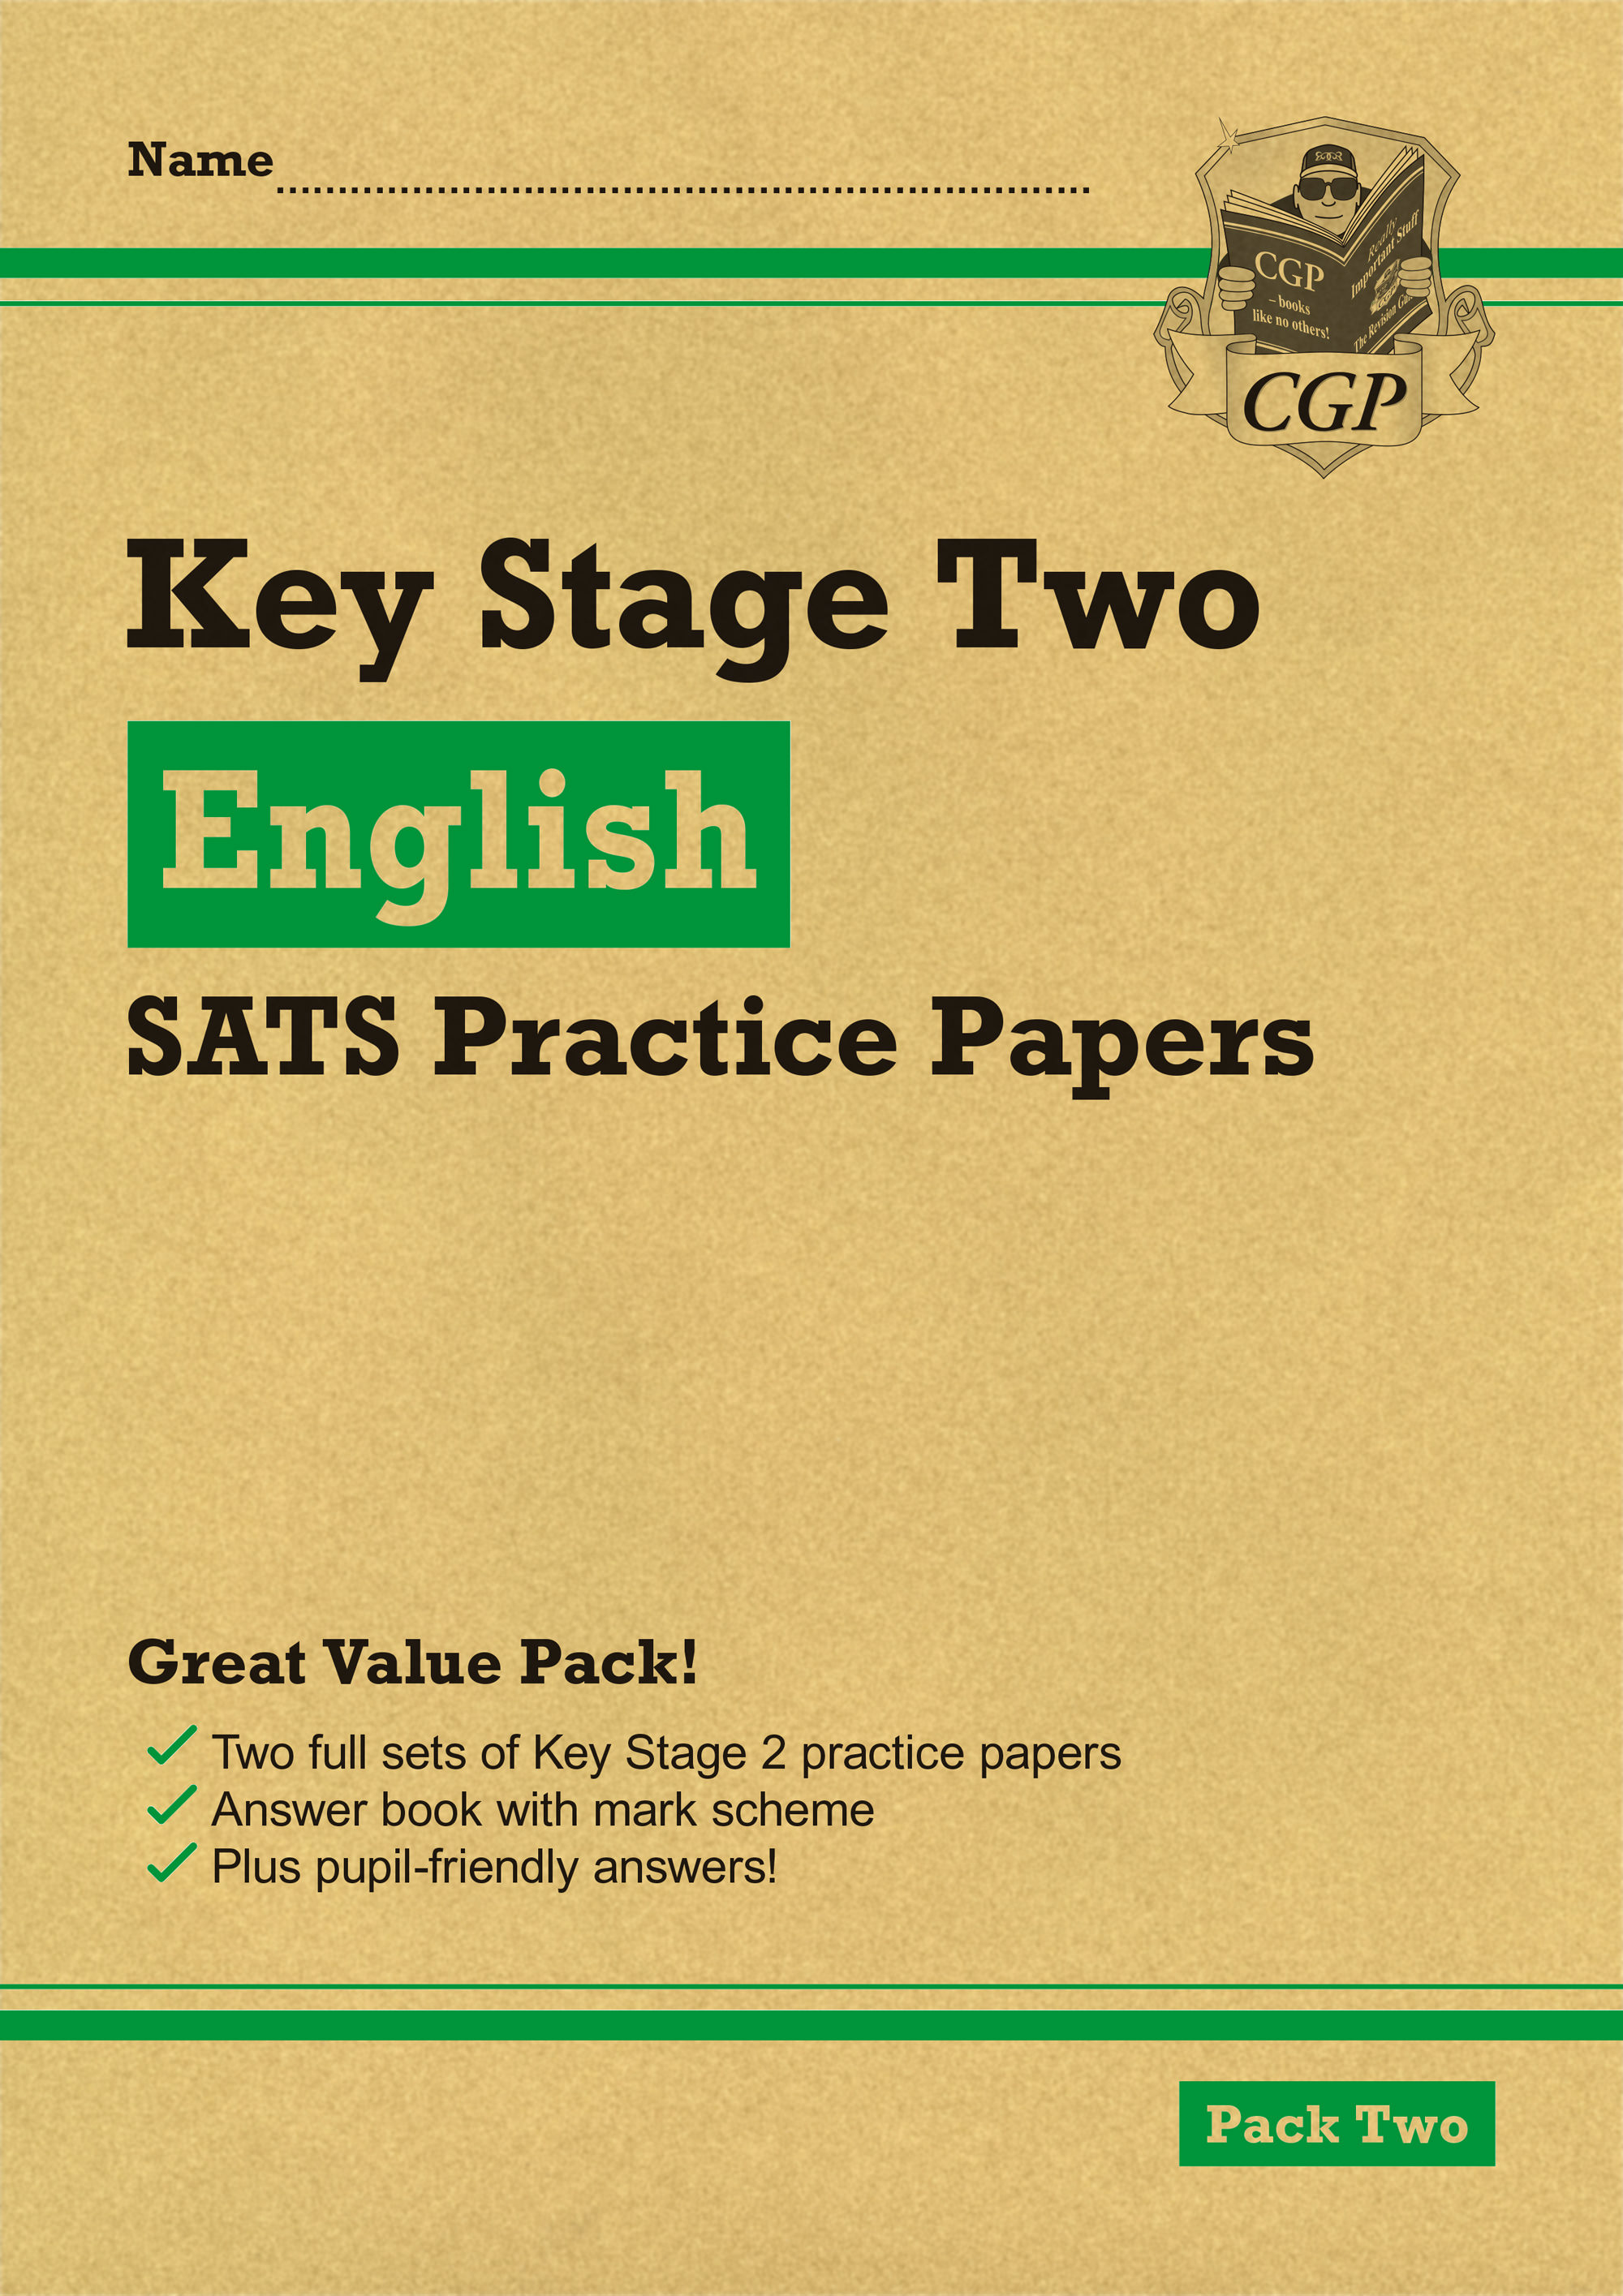 EHGP26 - New KS2 English SATS Practice Papers: Pack 2 (for the 2020 tests)